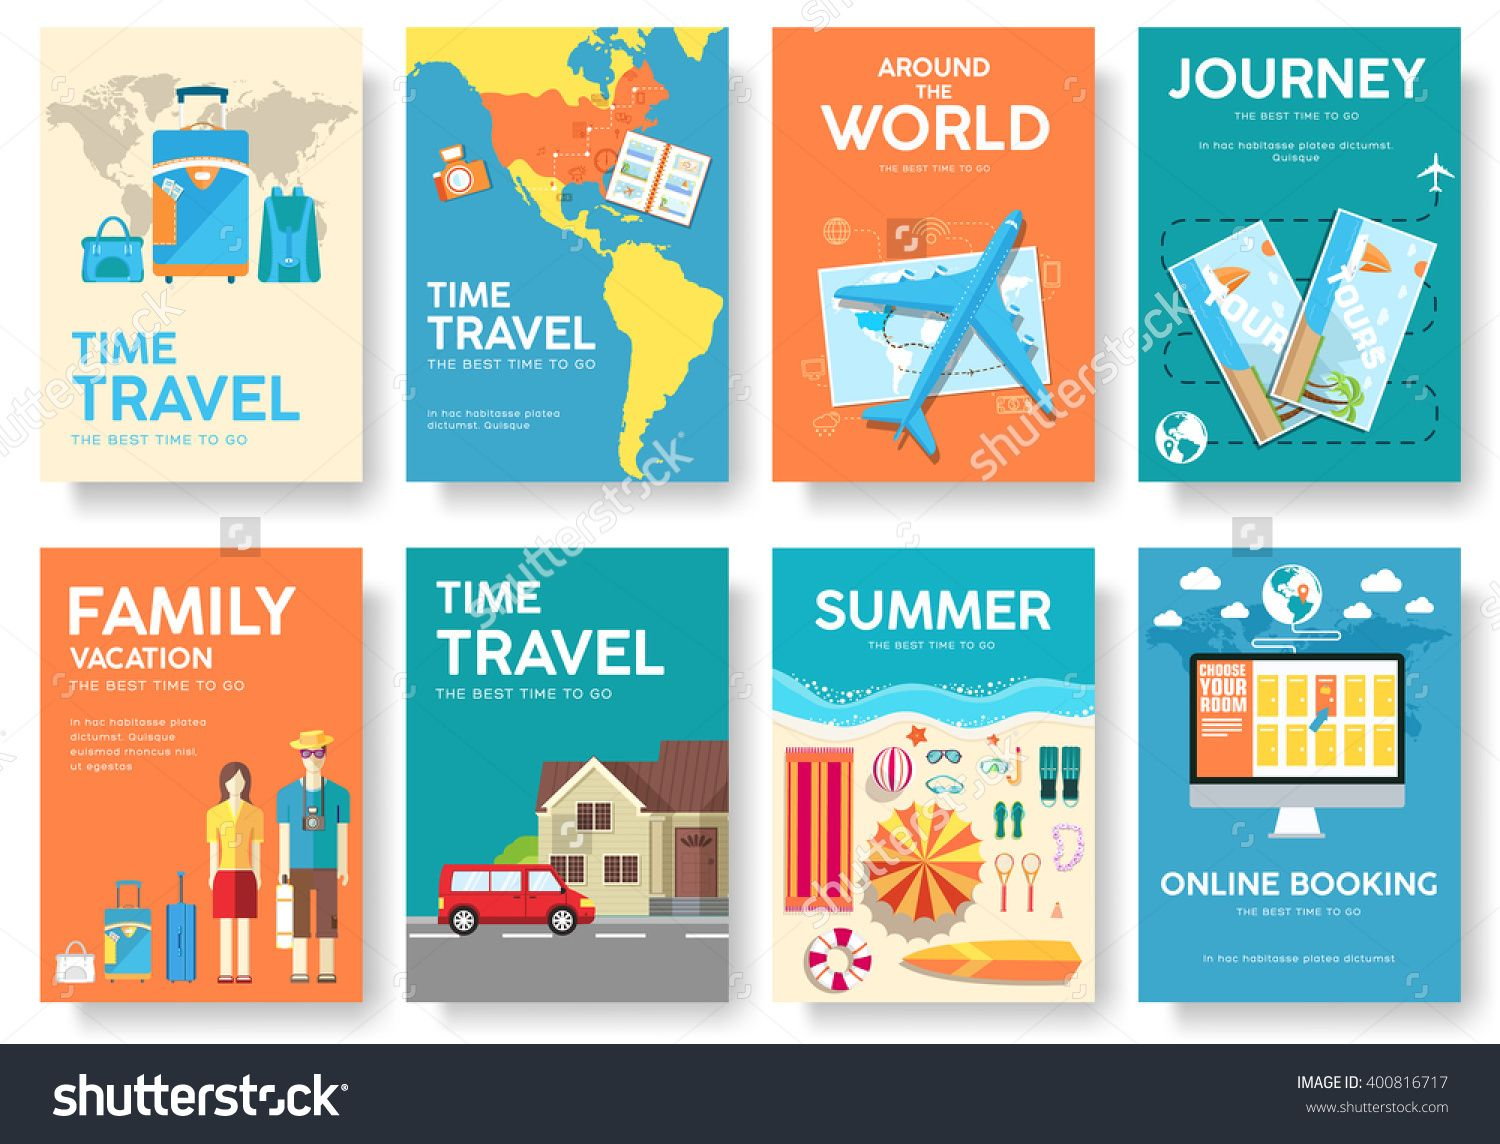 image.shutterstock.com z stock-vector-tour-of-the-world-vector ...